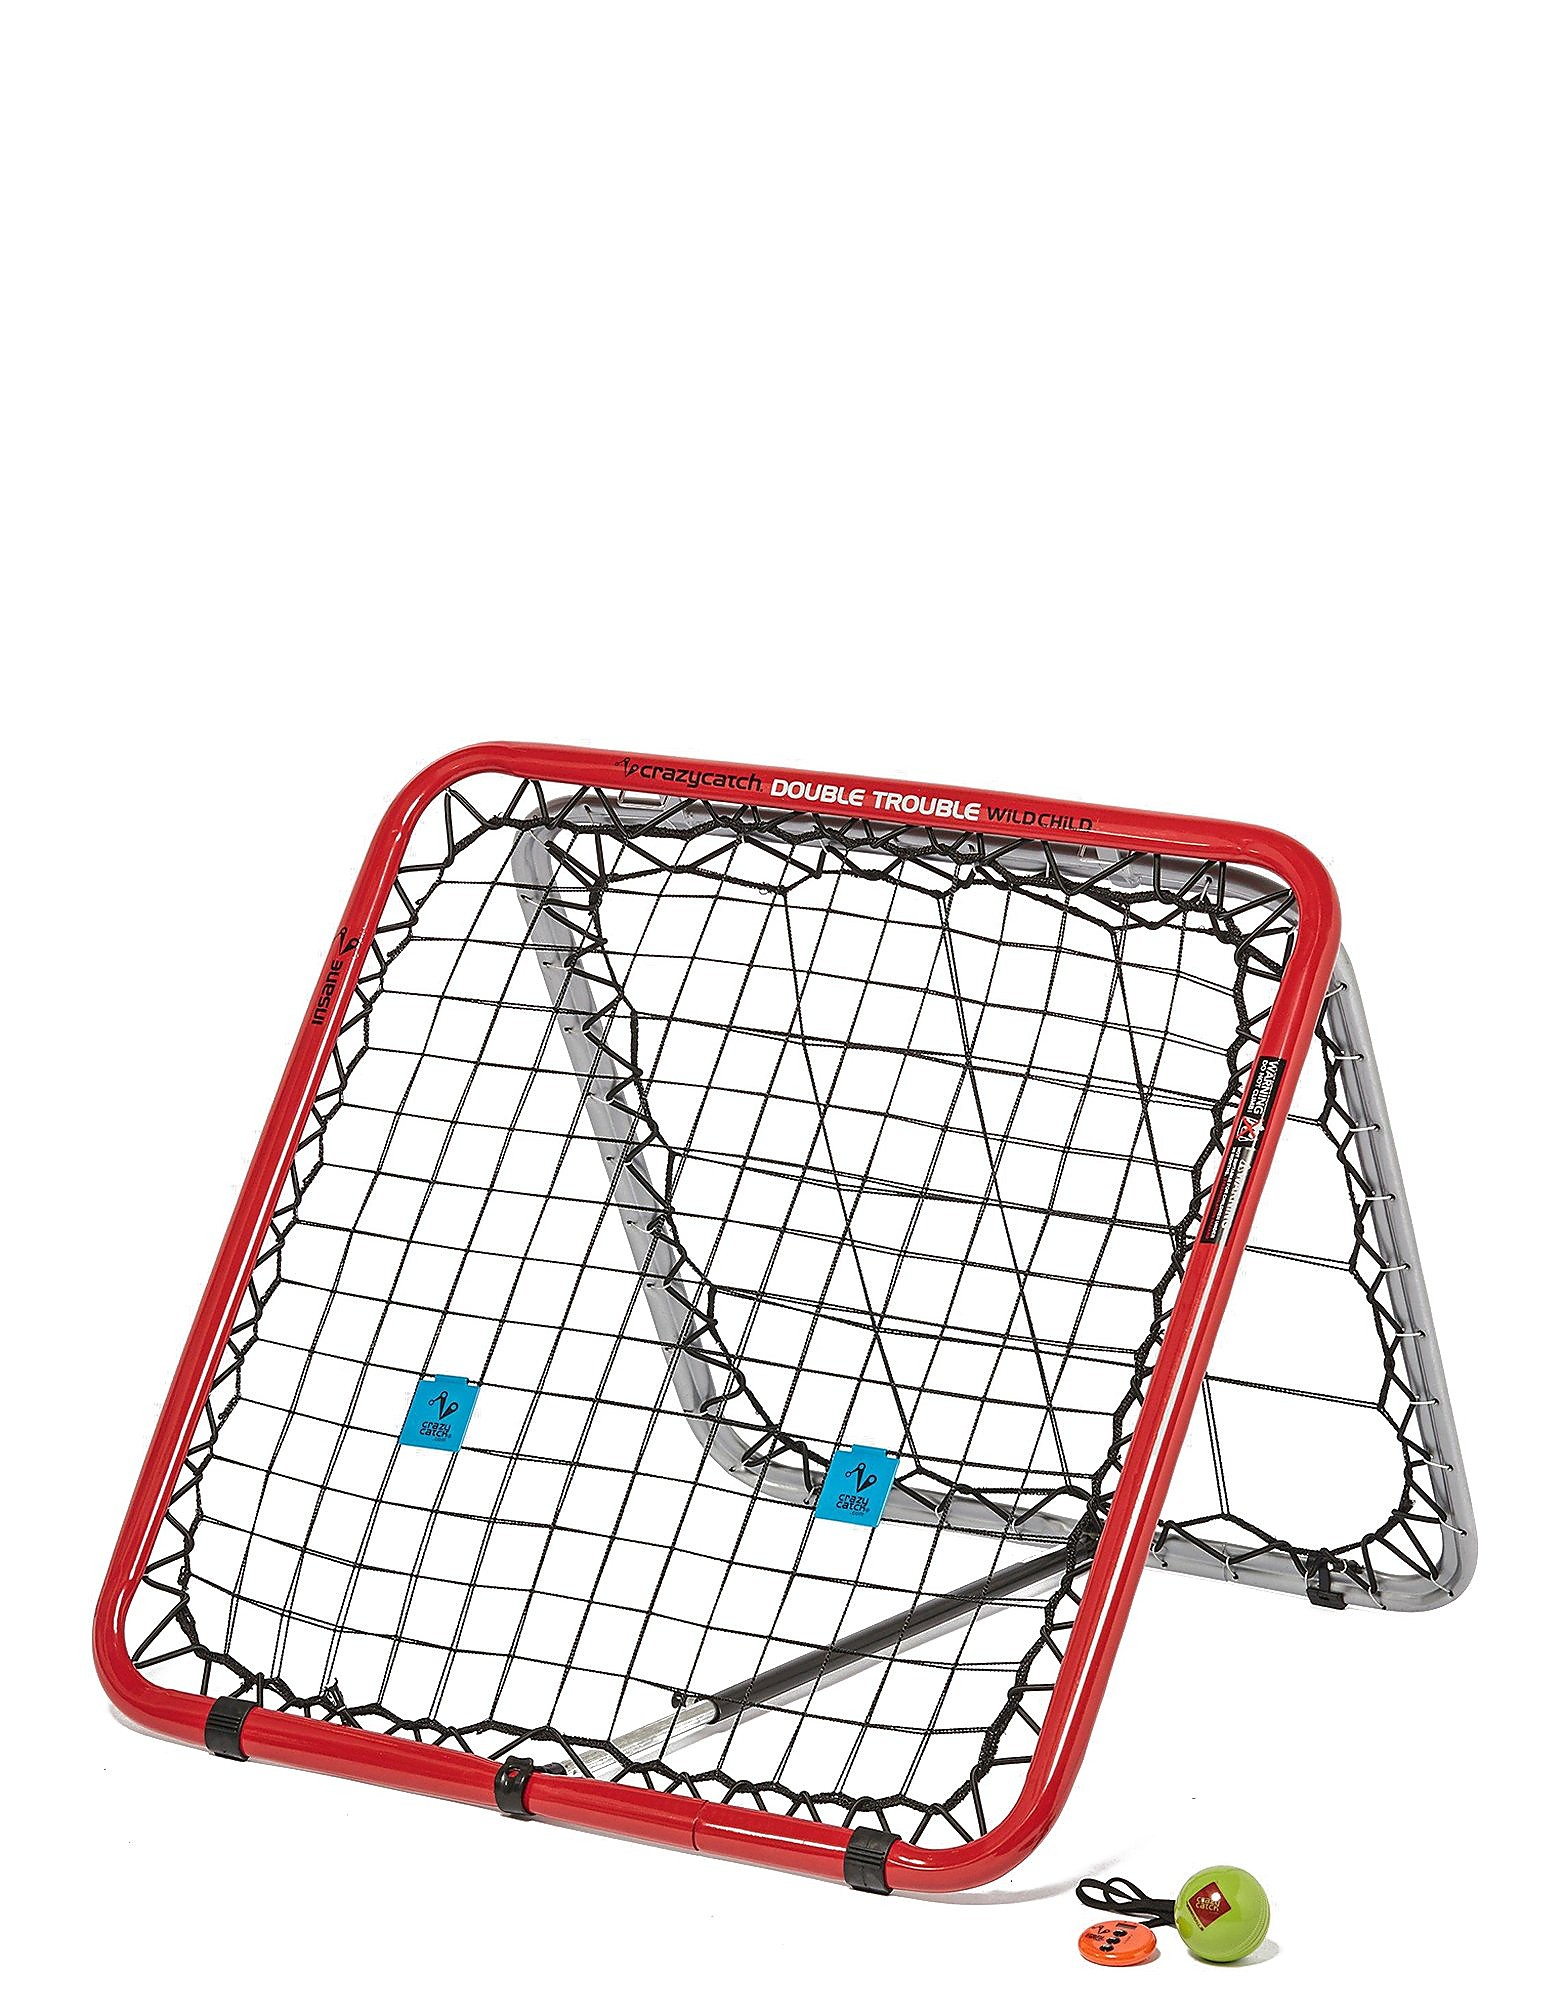 Crazy Catch Crazy Catch Double Trouble Portable Rebound Net